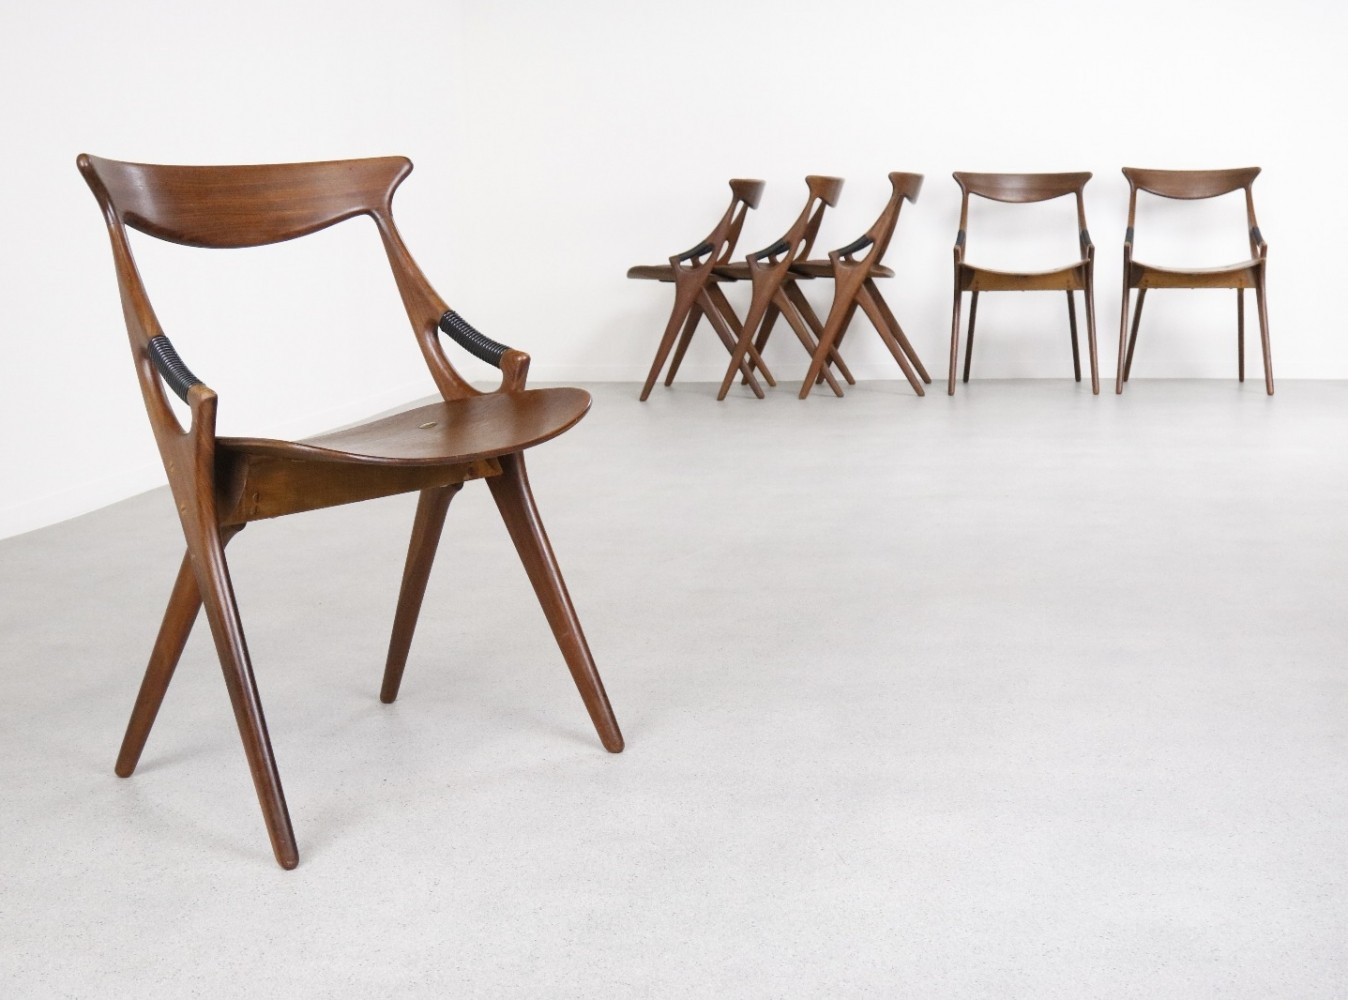 Set of 6 Model 71 dinner chairs by Arne Hovmand Olsen for Mogens Kold, 1950s